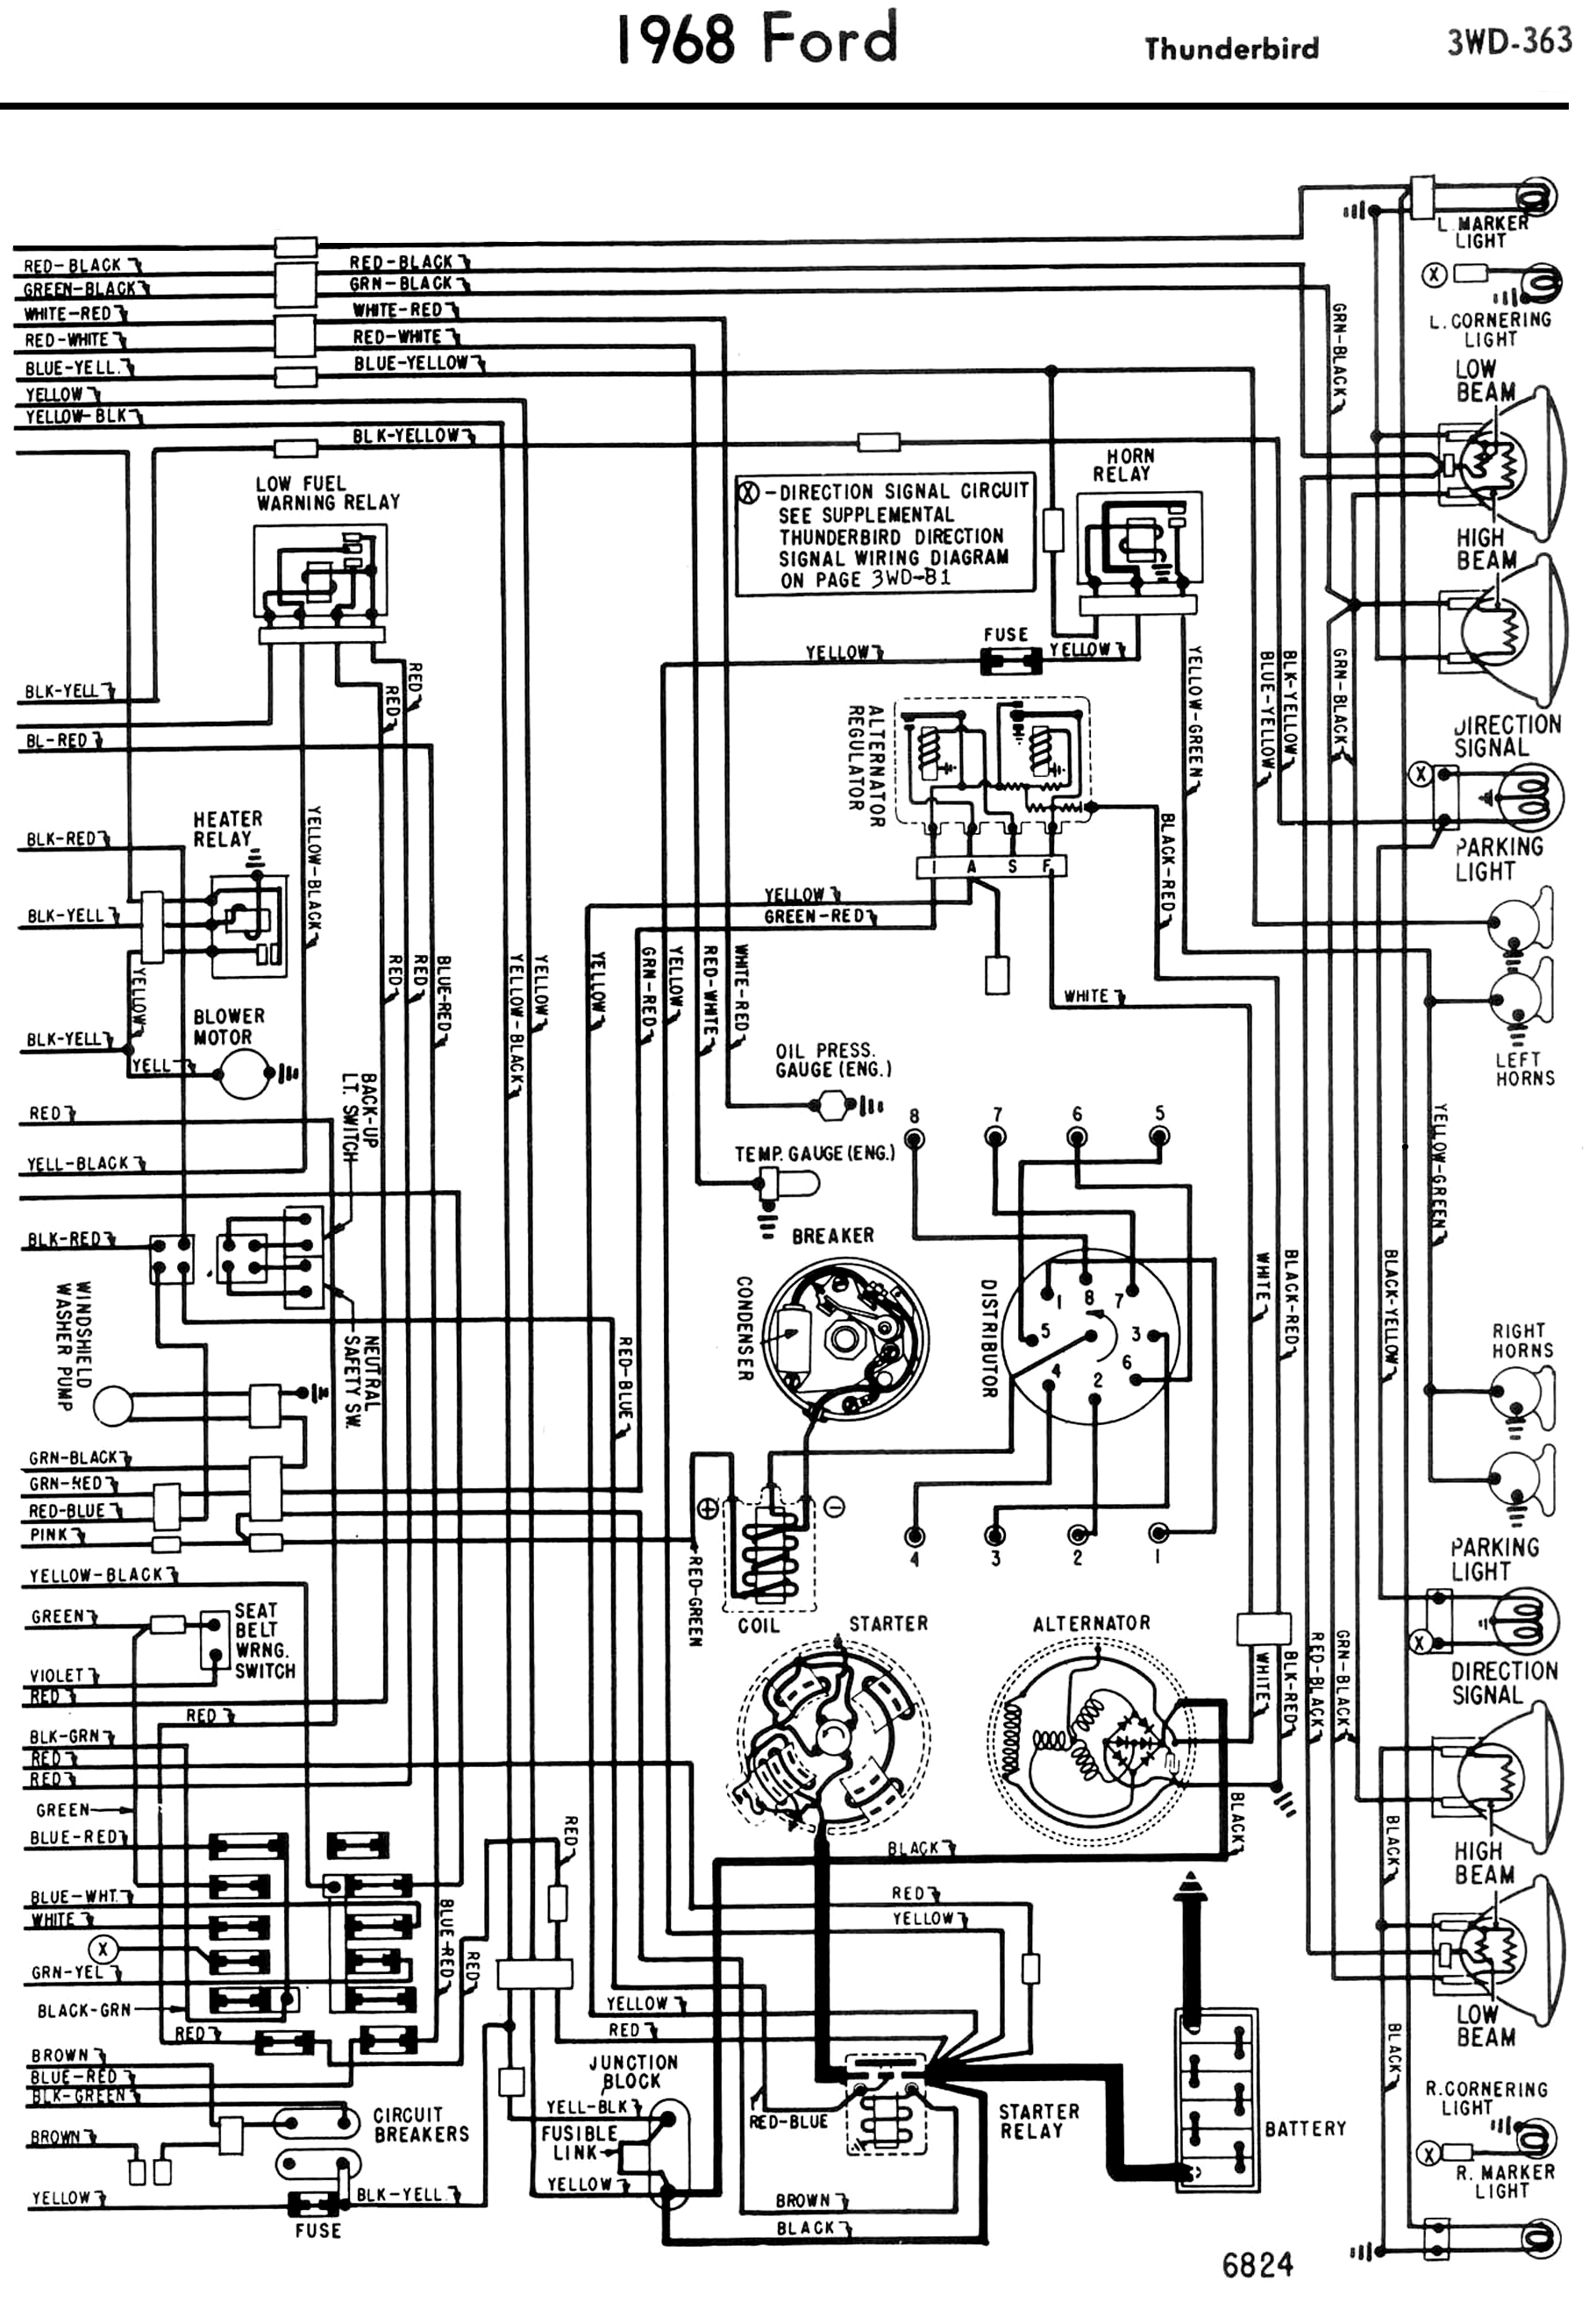 1965 Ford Thunderbird Wiring Diagram Guide And Troubleshooting Of 64 Mustang Turn Signal Engine Detailed Rh 15 7 Ocotillo Paysage Com 1964